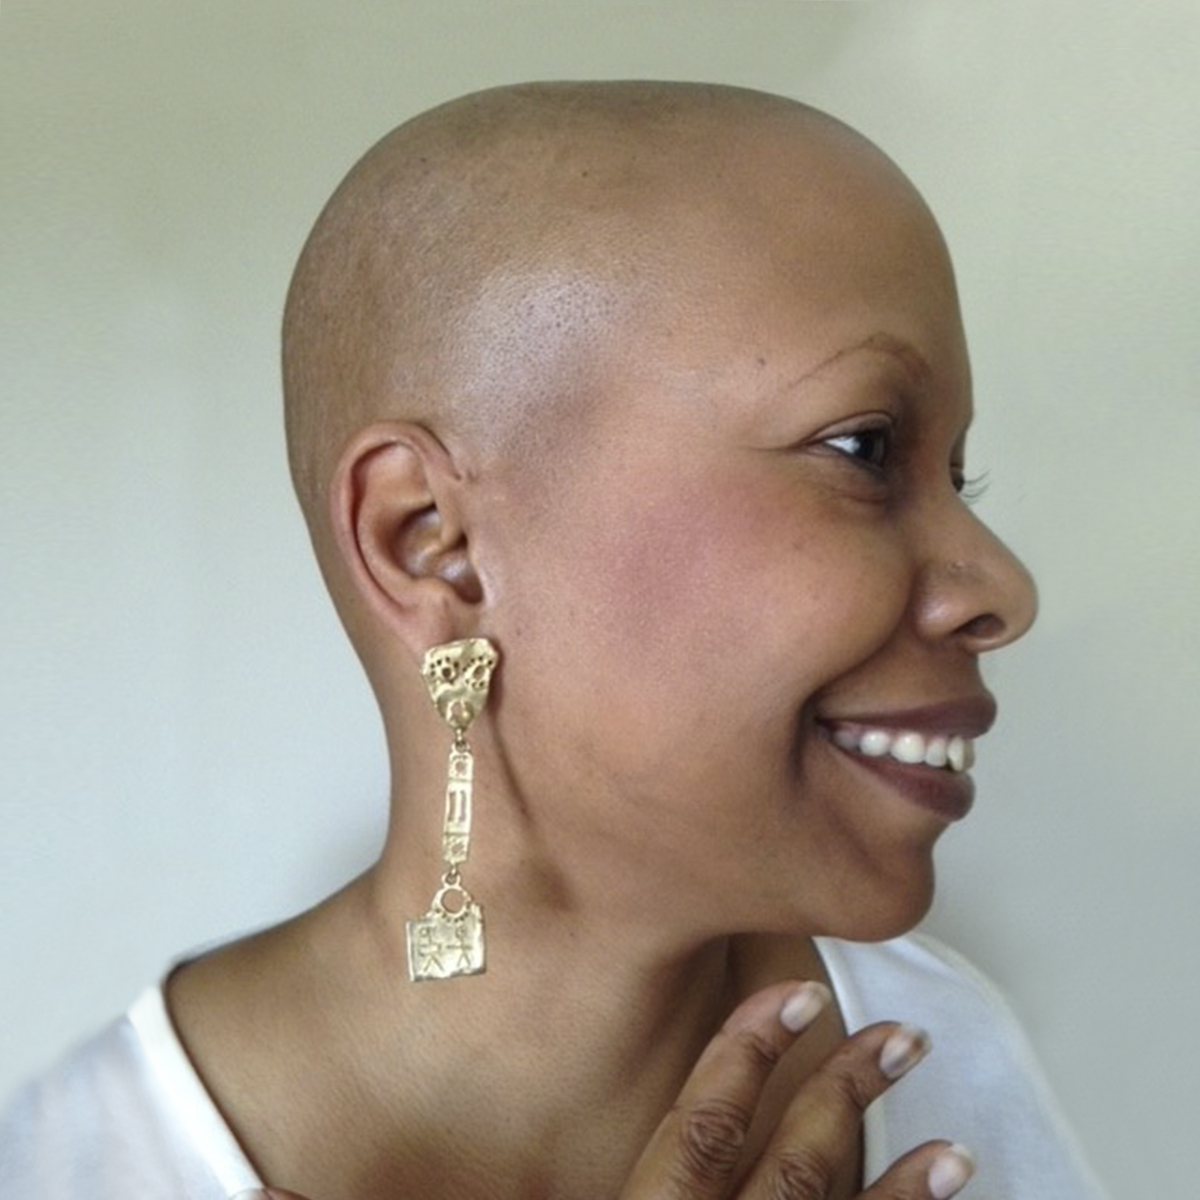 Dianna Newton, grateful patient, in 2015 following treatment for cancer